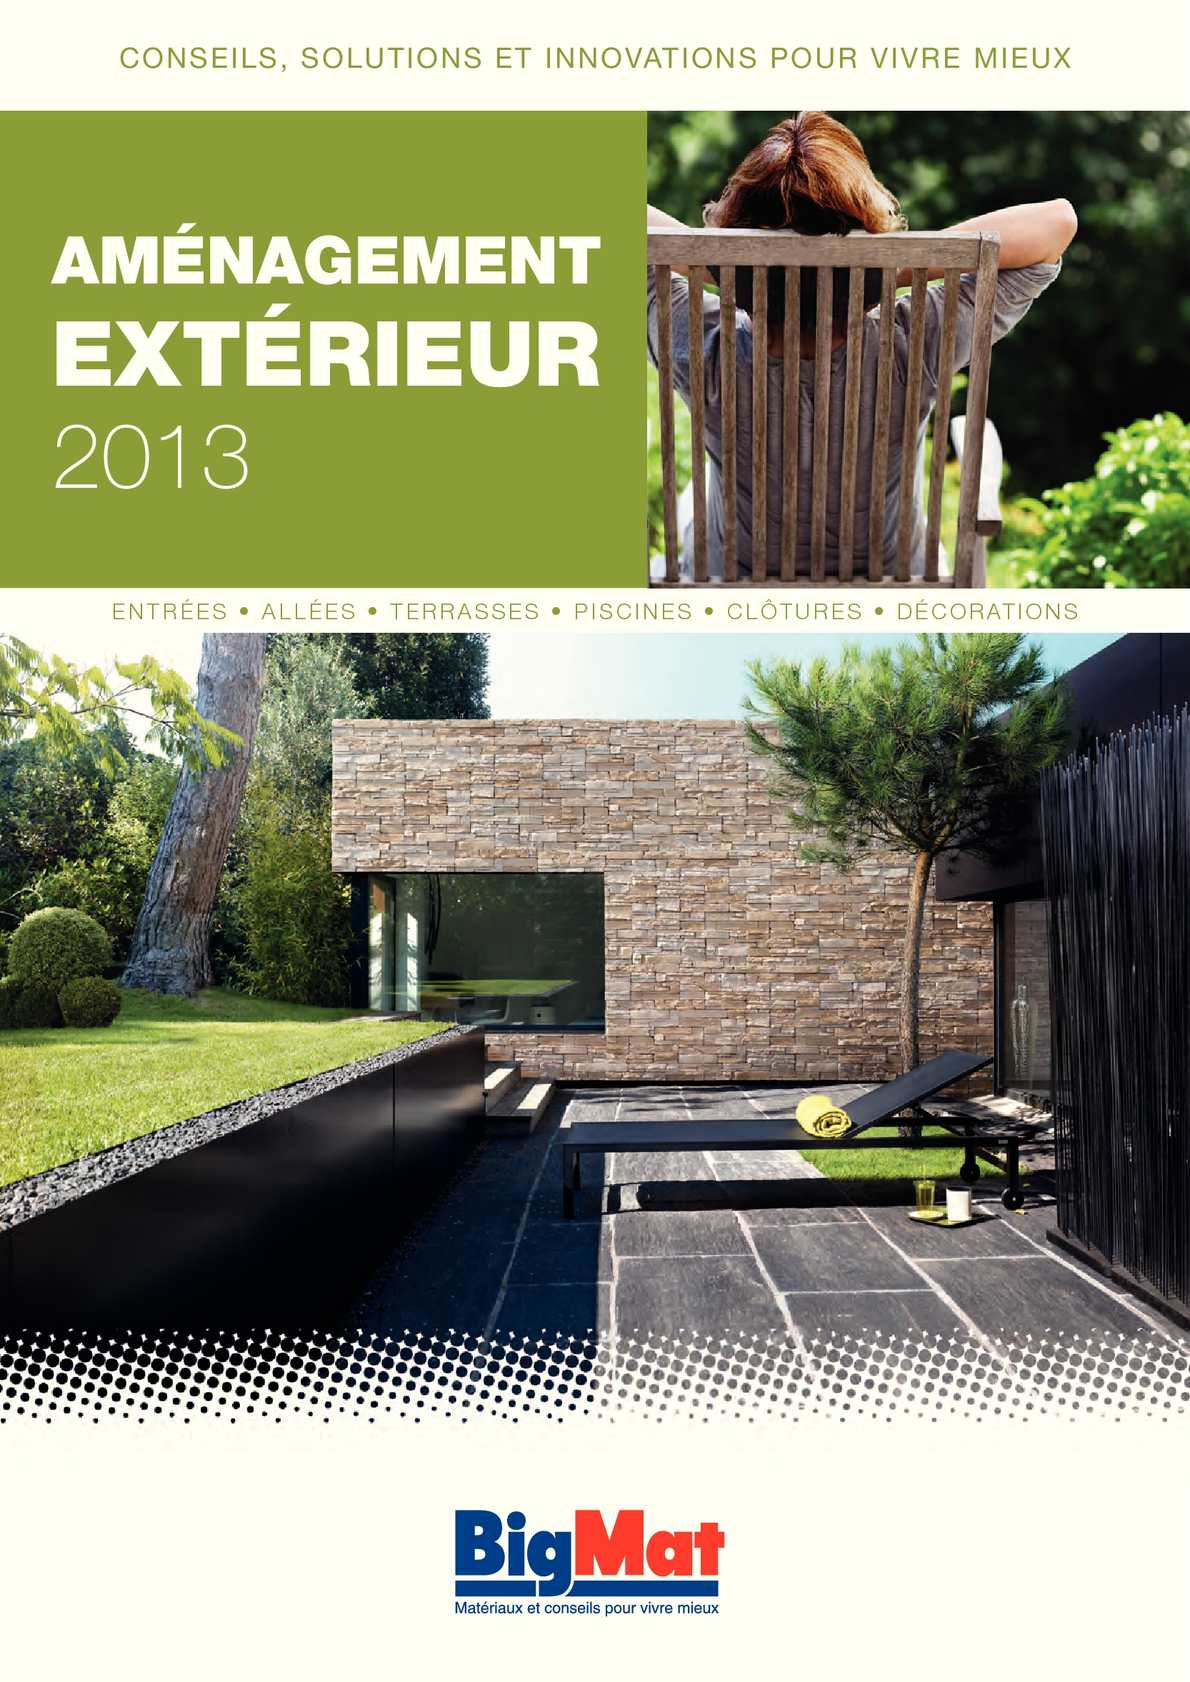 Dalles De Terrasse En Beton Calaméo - Catalogue Bigmat Amenagement Exterieur 2013